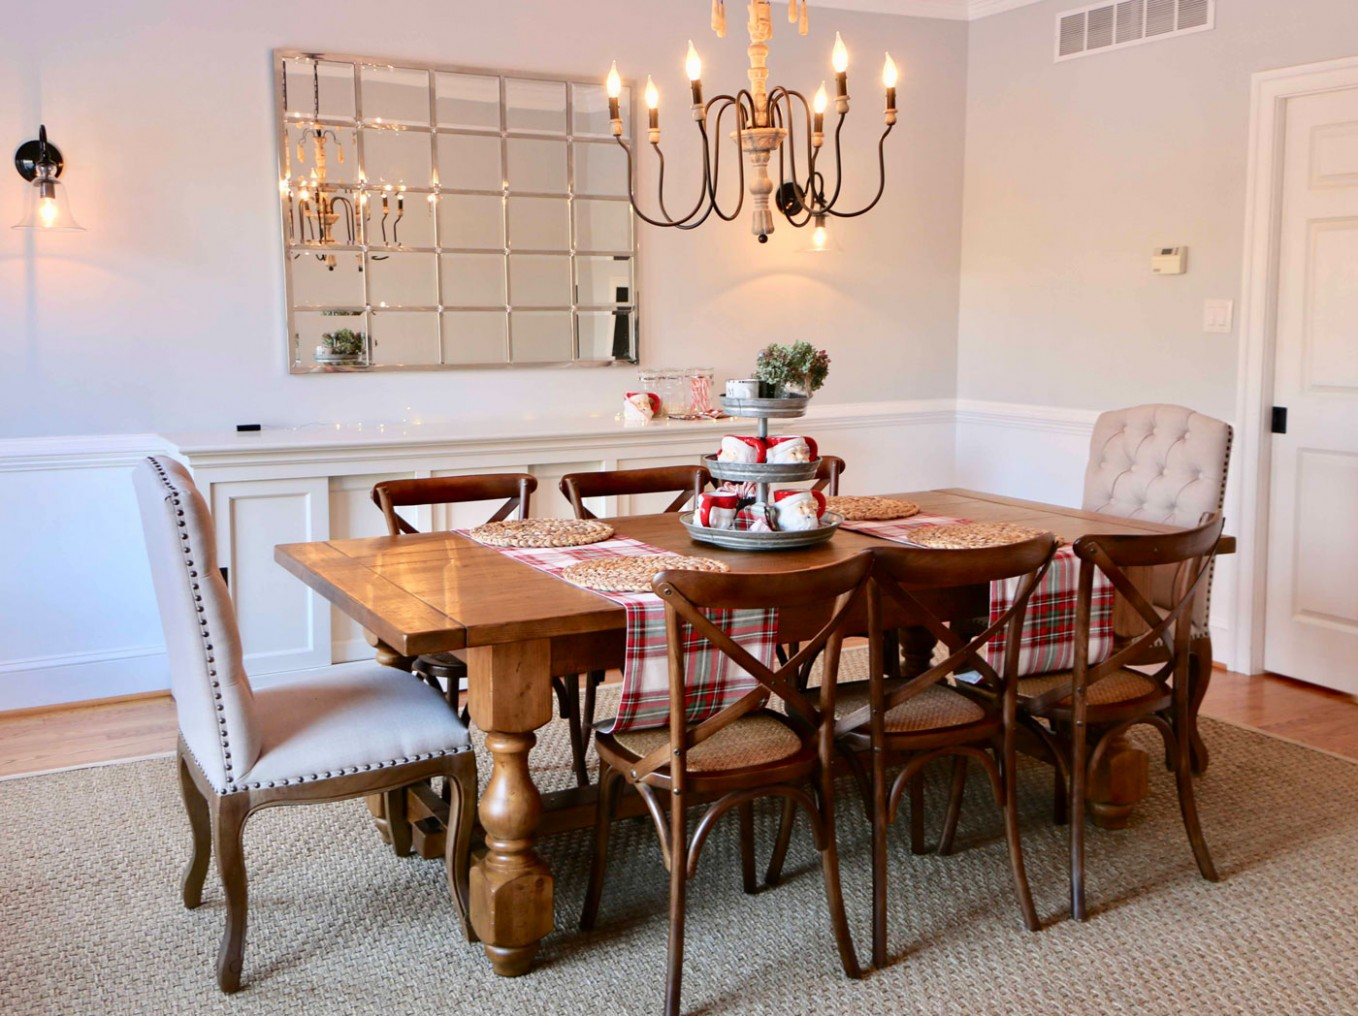 Dining Room Decor – Christmas Style - Dining Room Ideas Pottery Barn